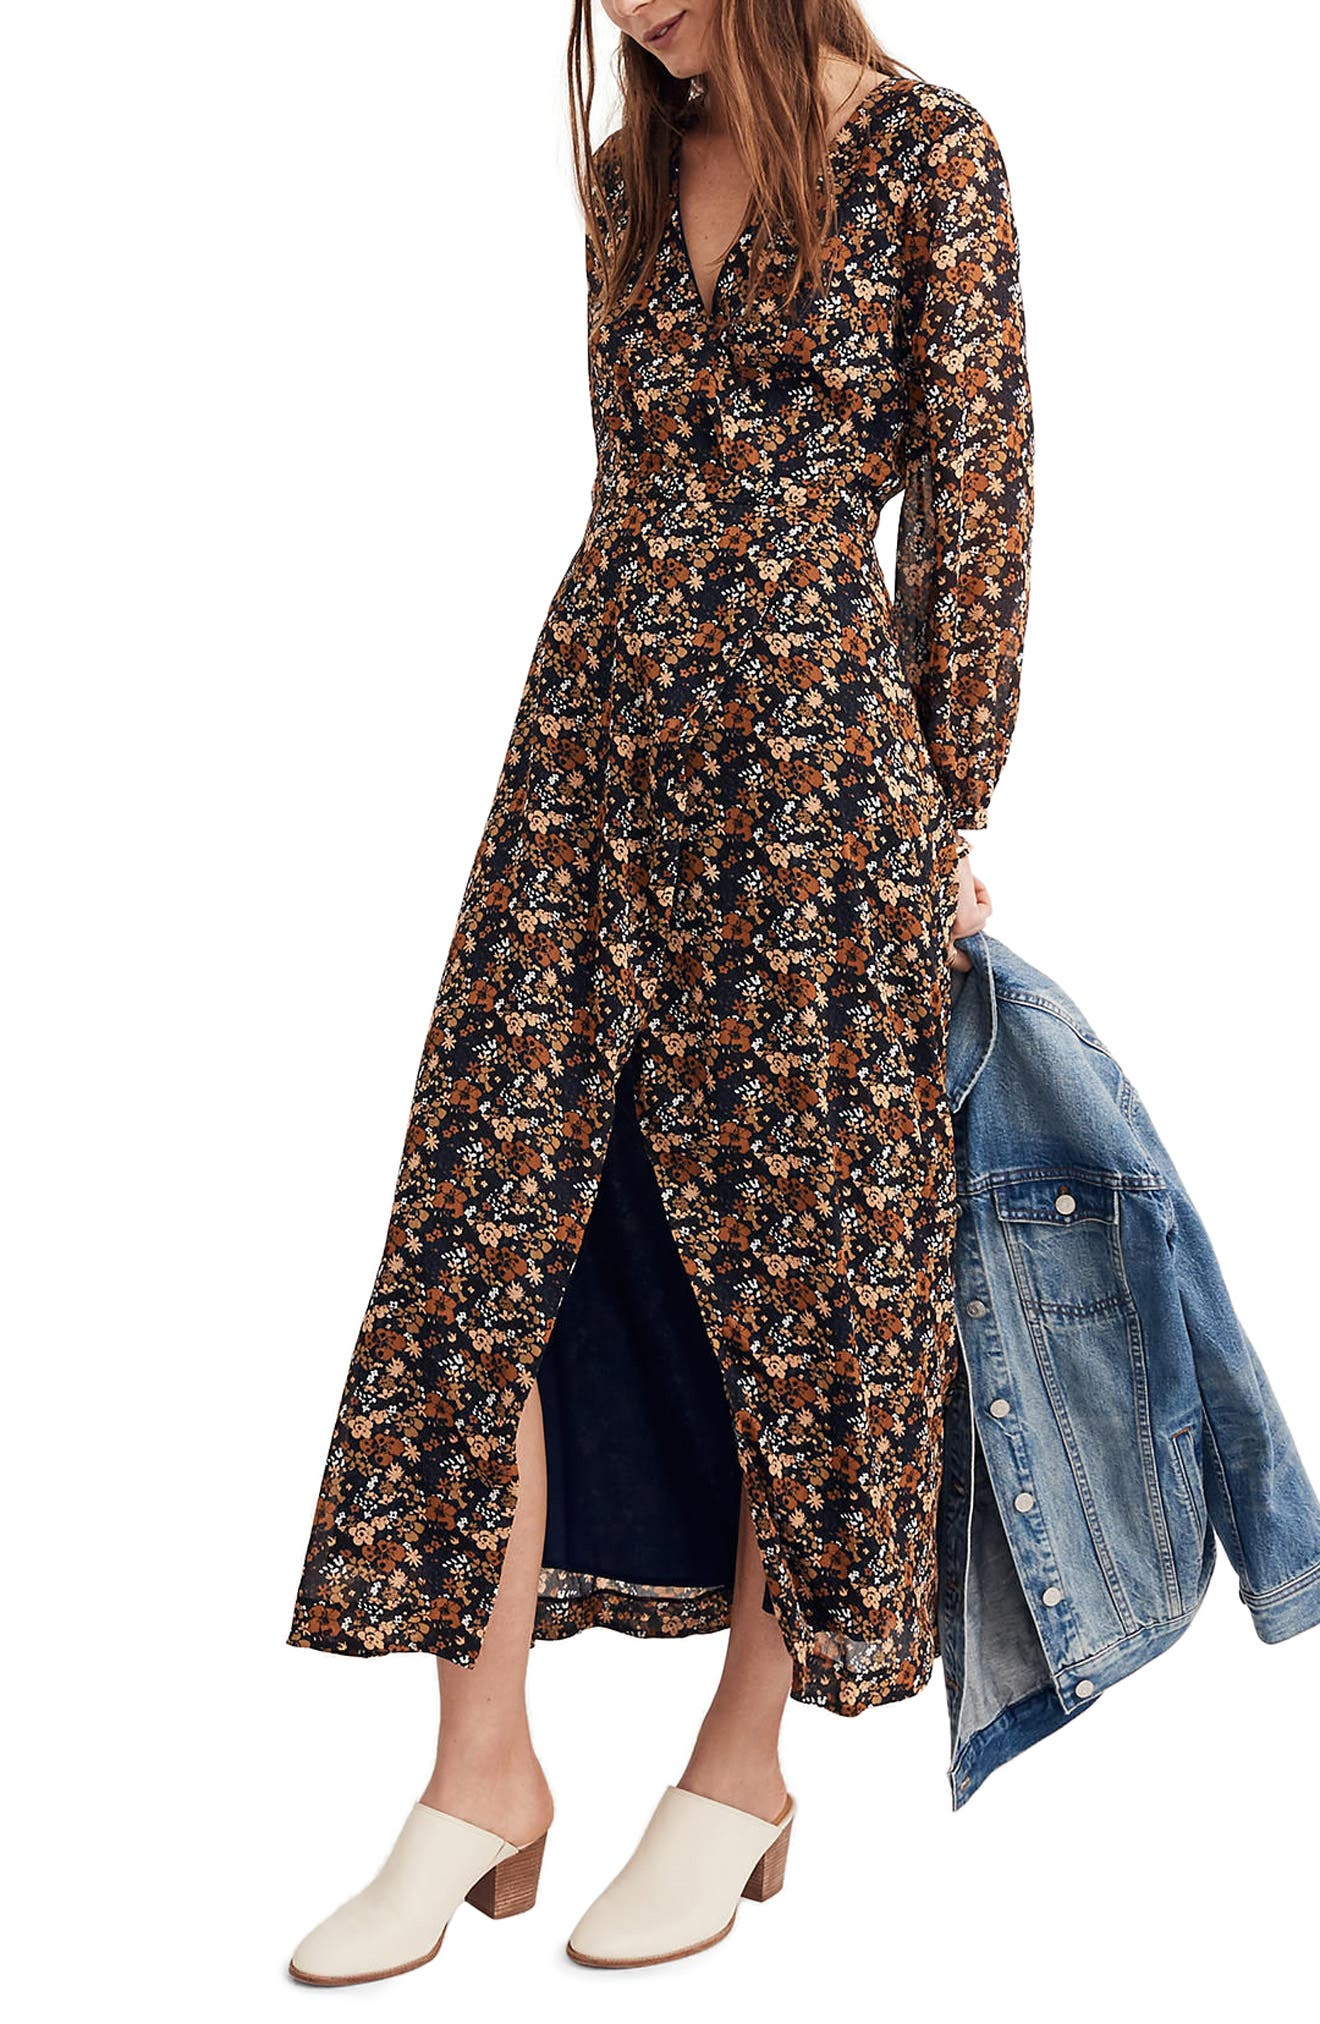 Nightflower Maxi Dress,                         Main,                         color, Woodland Floral